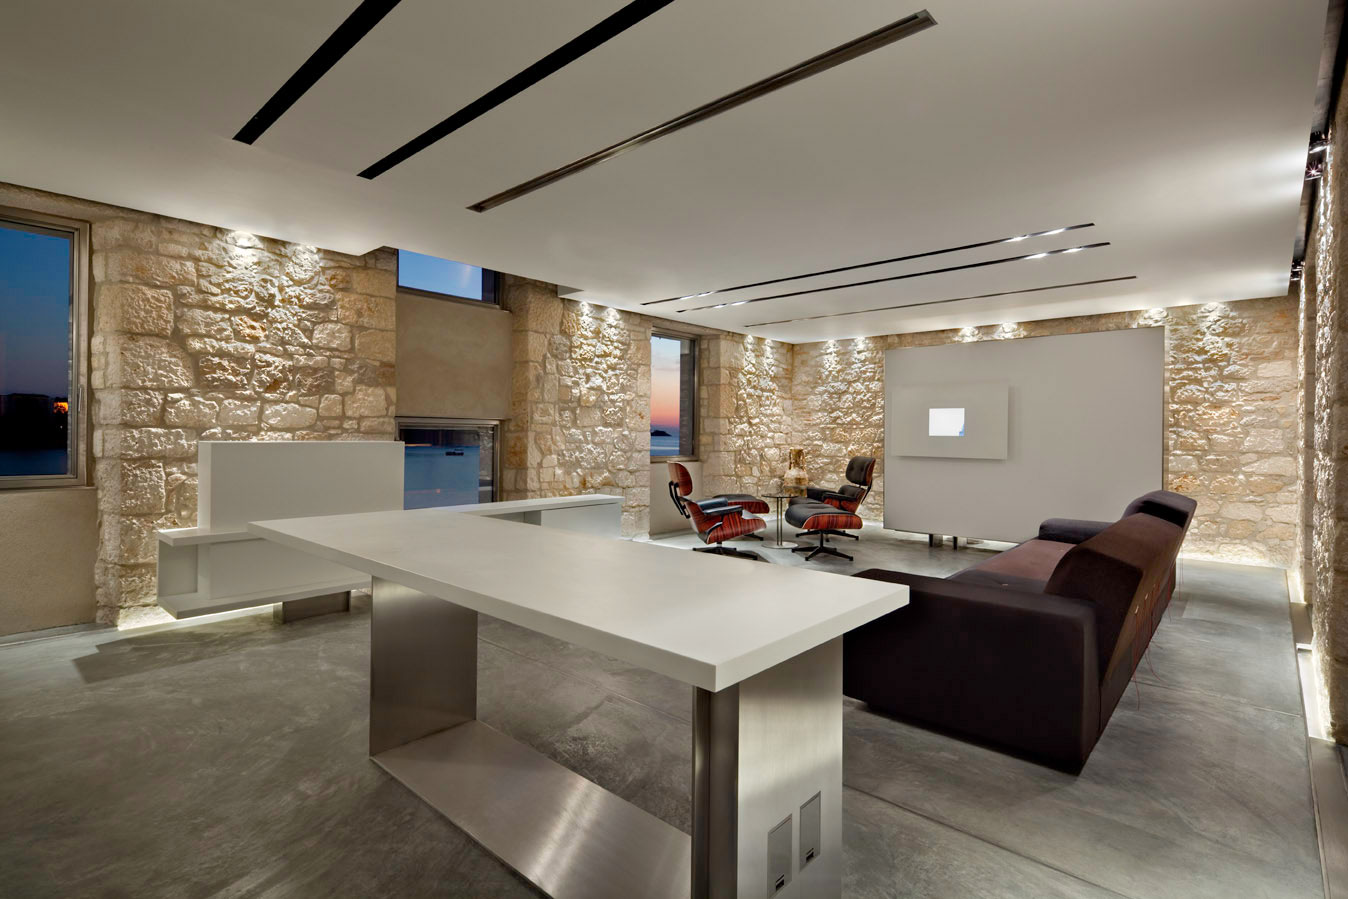 Living Space, Lighting, Renovation of an 18th Century Building in Rovinj, Croatia